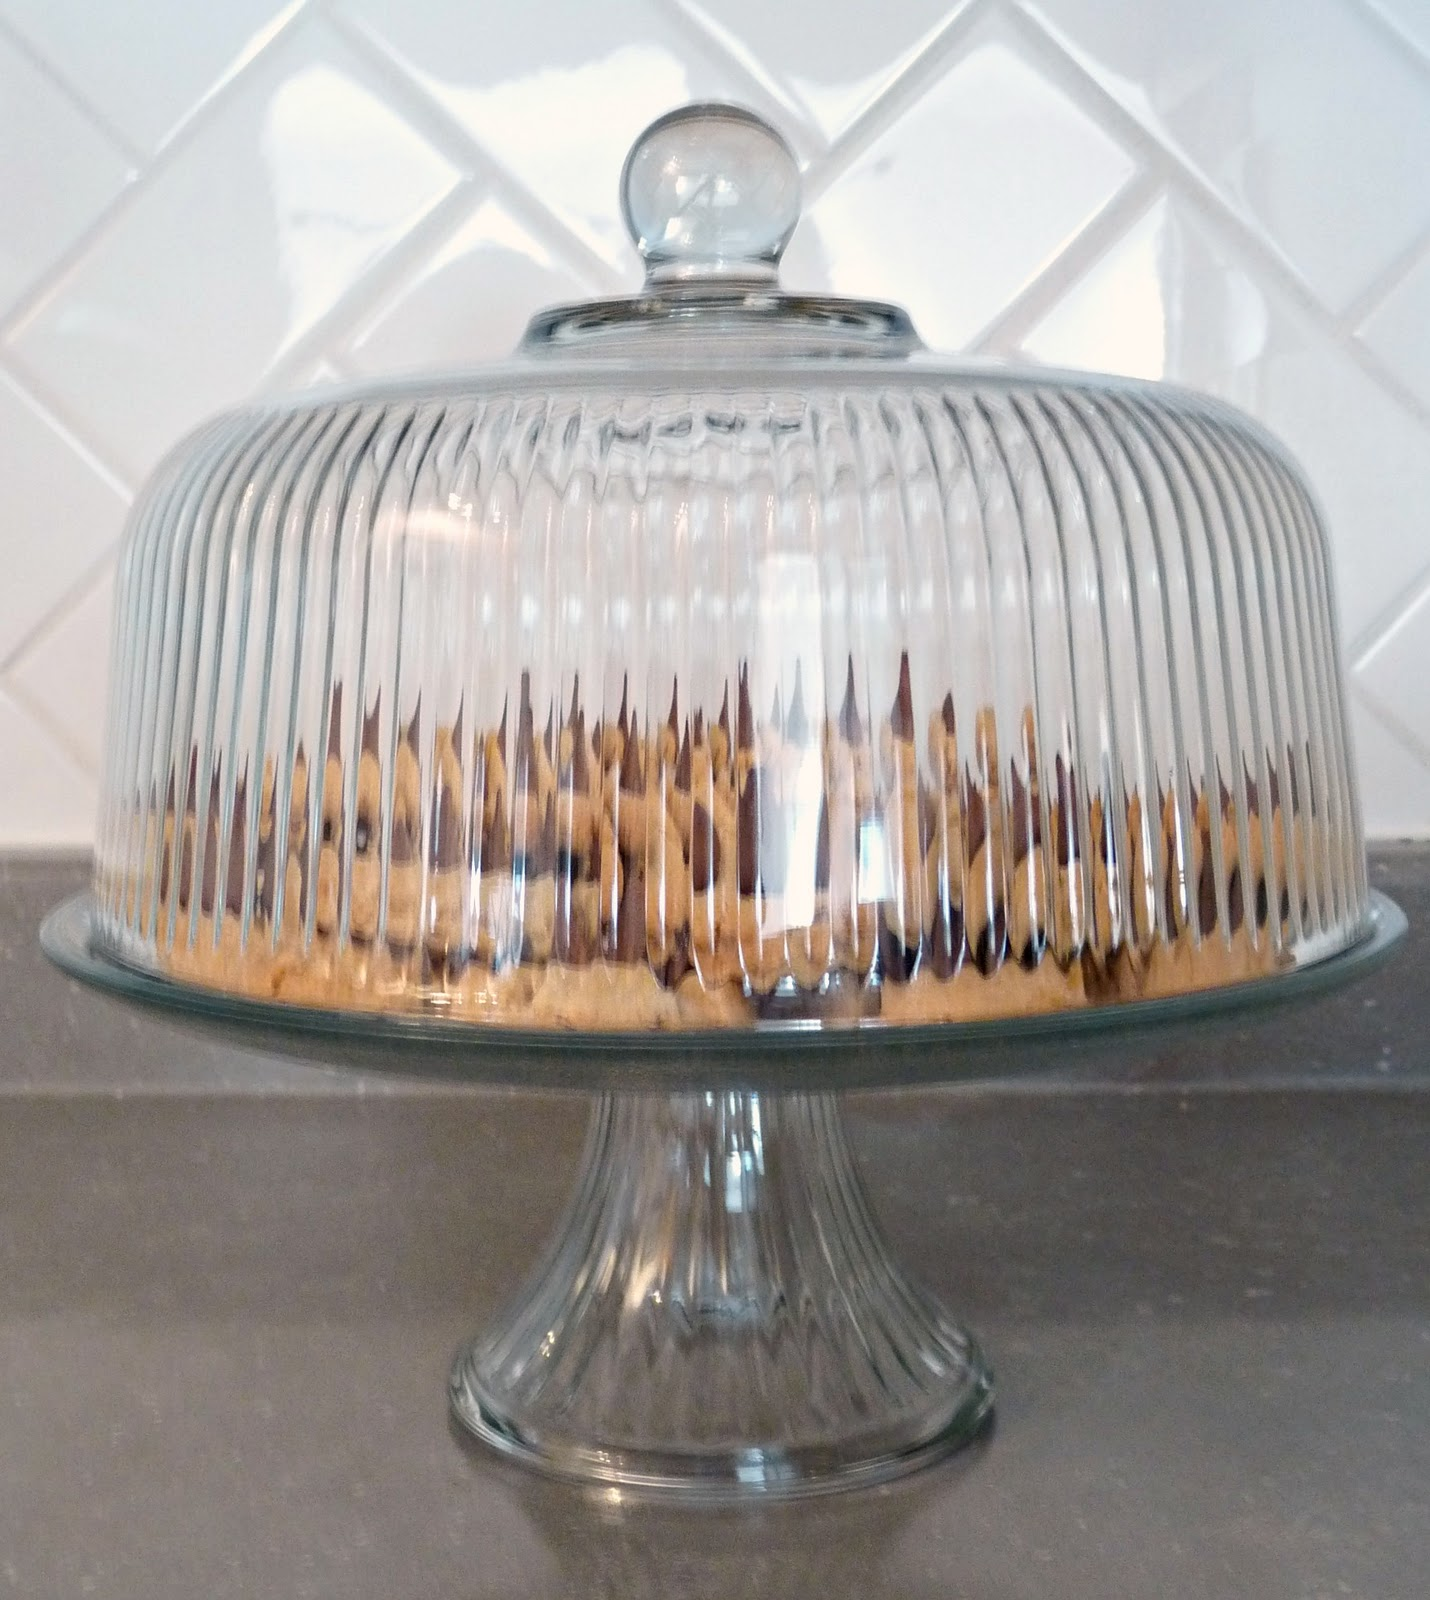 Glass cake stand full of cookies